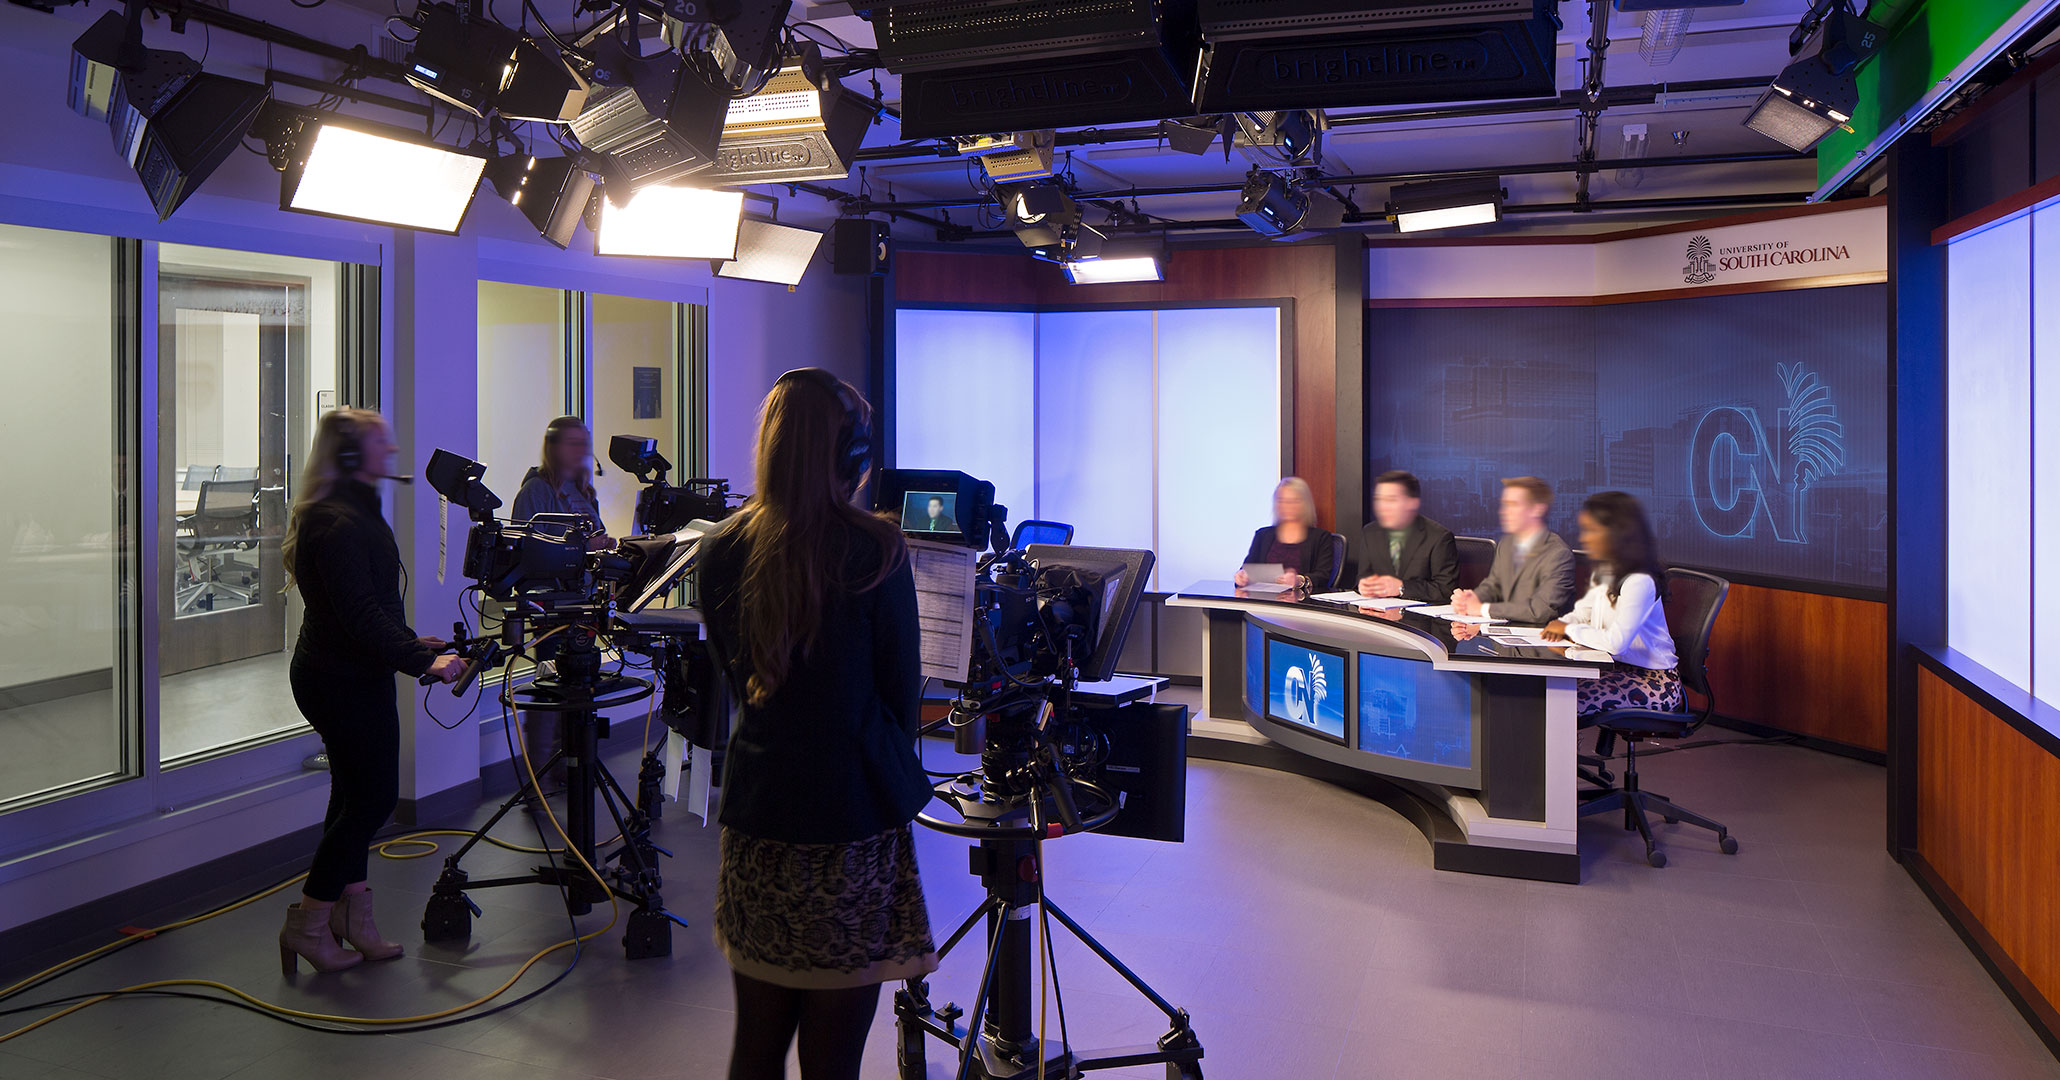 UofSC worked with Boudreaux architects to design a news room at the School of Journalism.